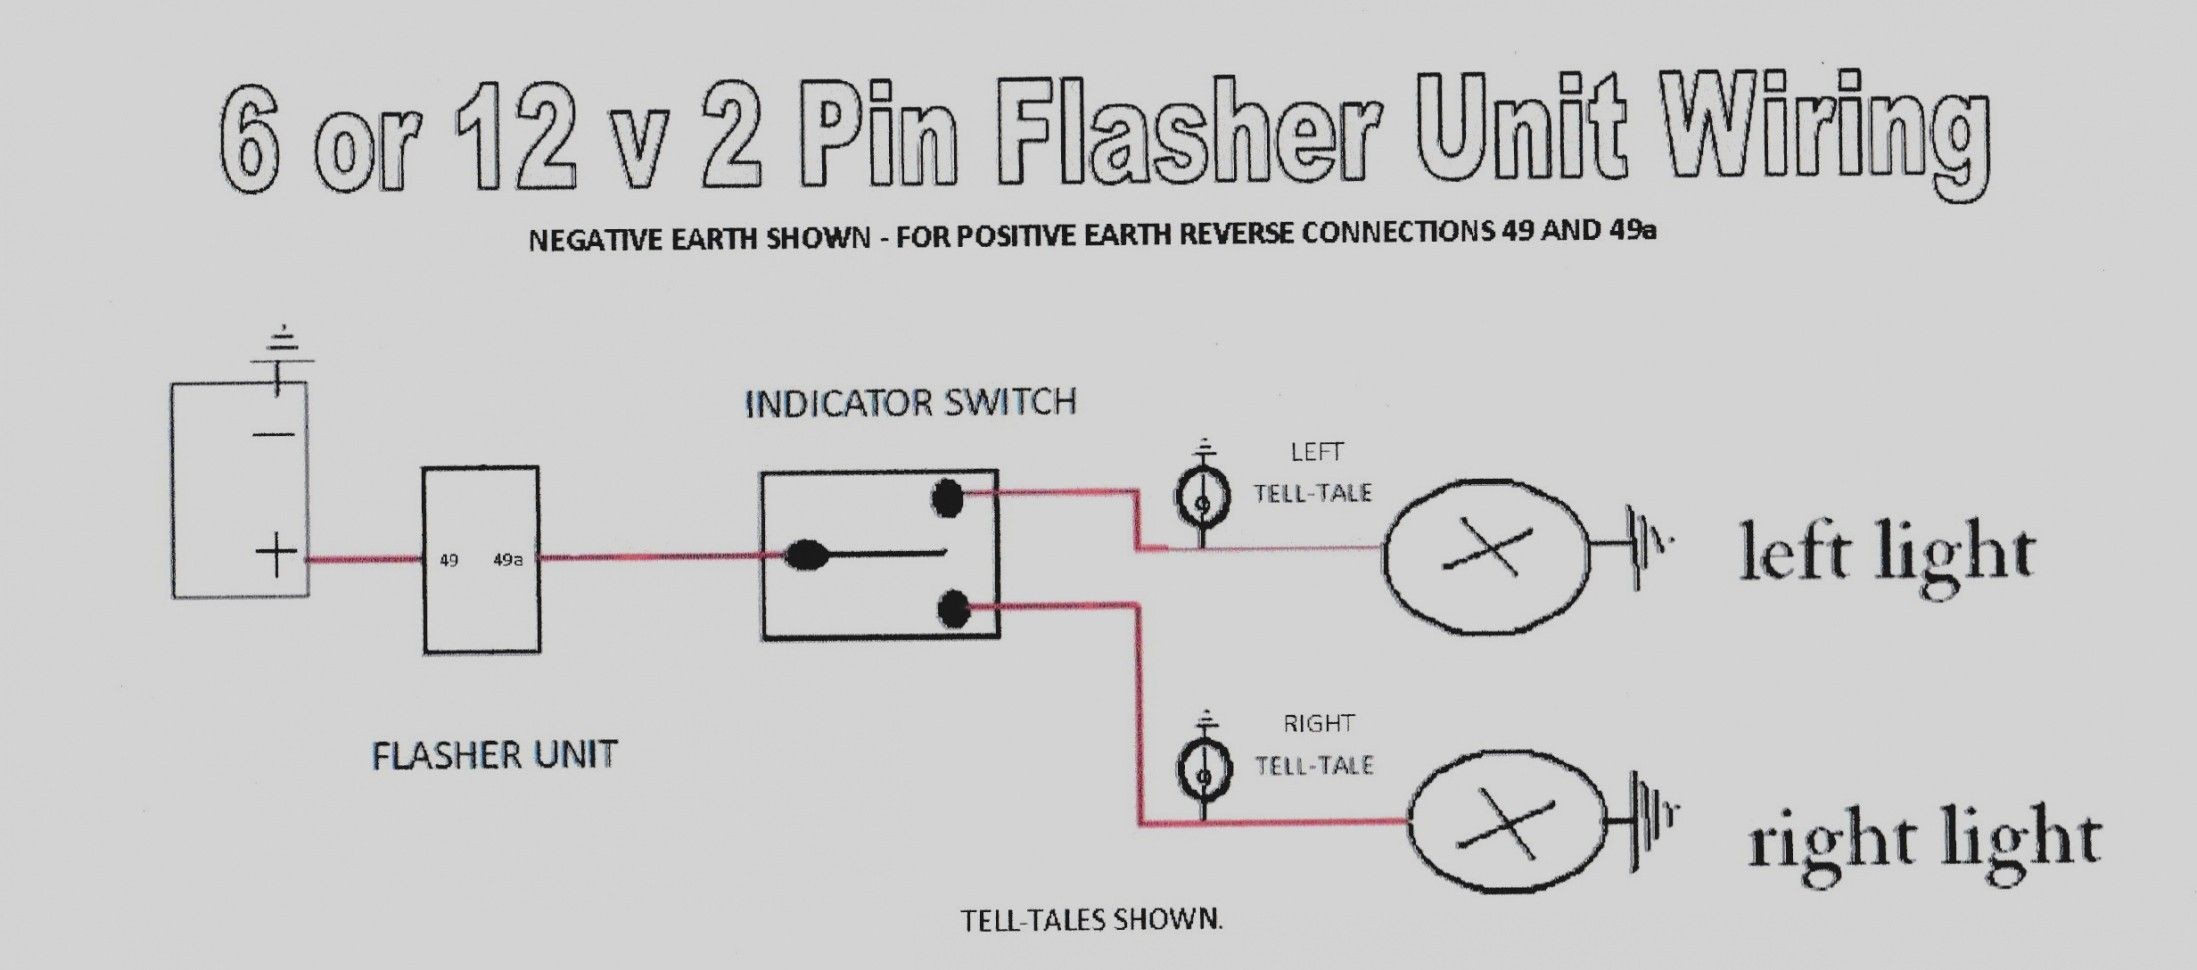 Wiring A 3 Prong Electronic Flasher 1779 Best Diagram Sample Images Of Wiring A 3 Prong Electronic Flasher